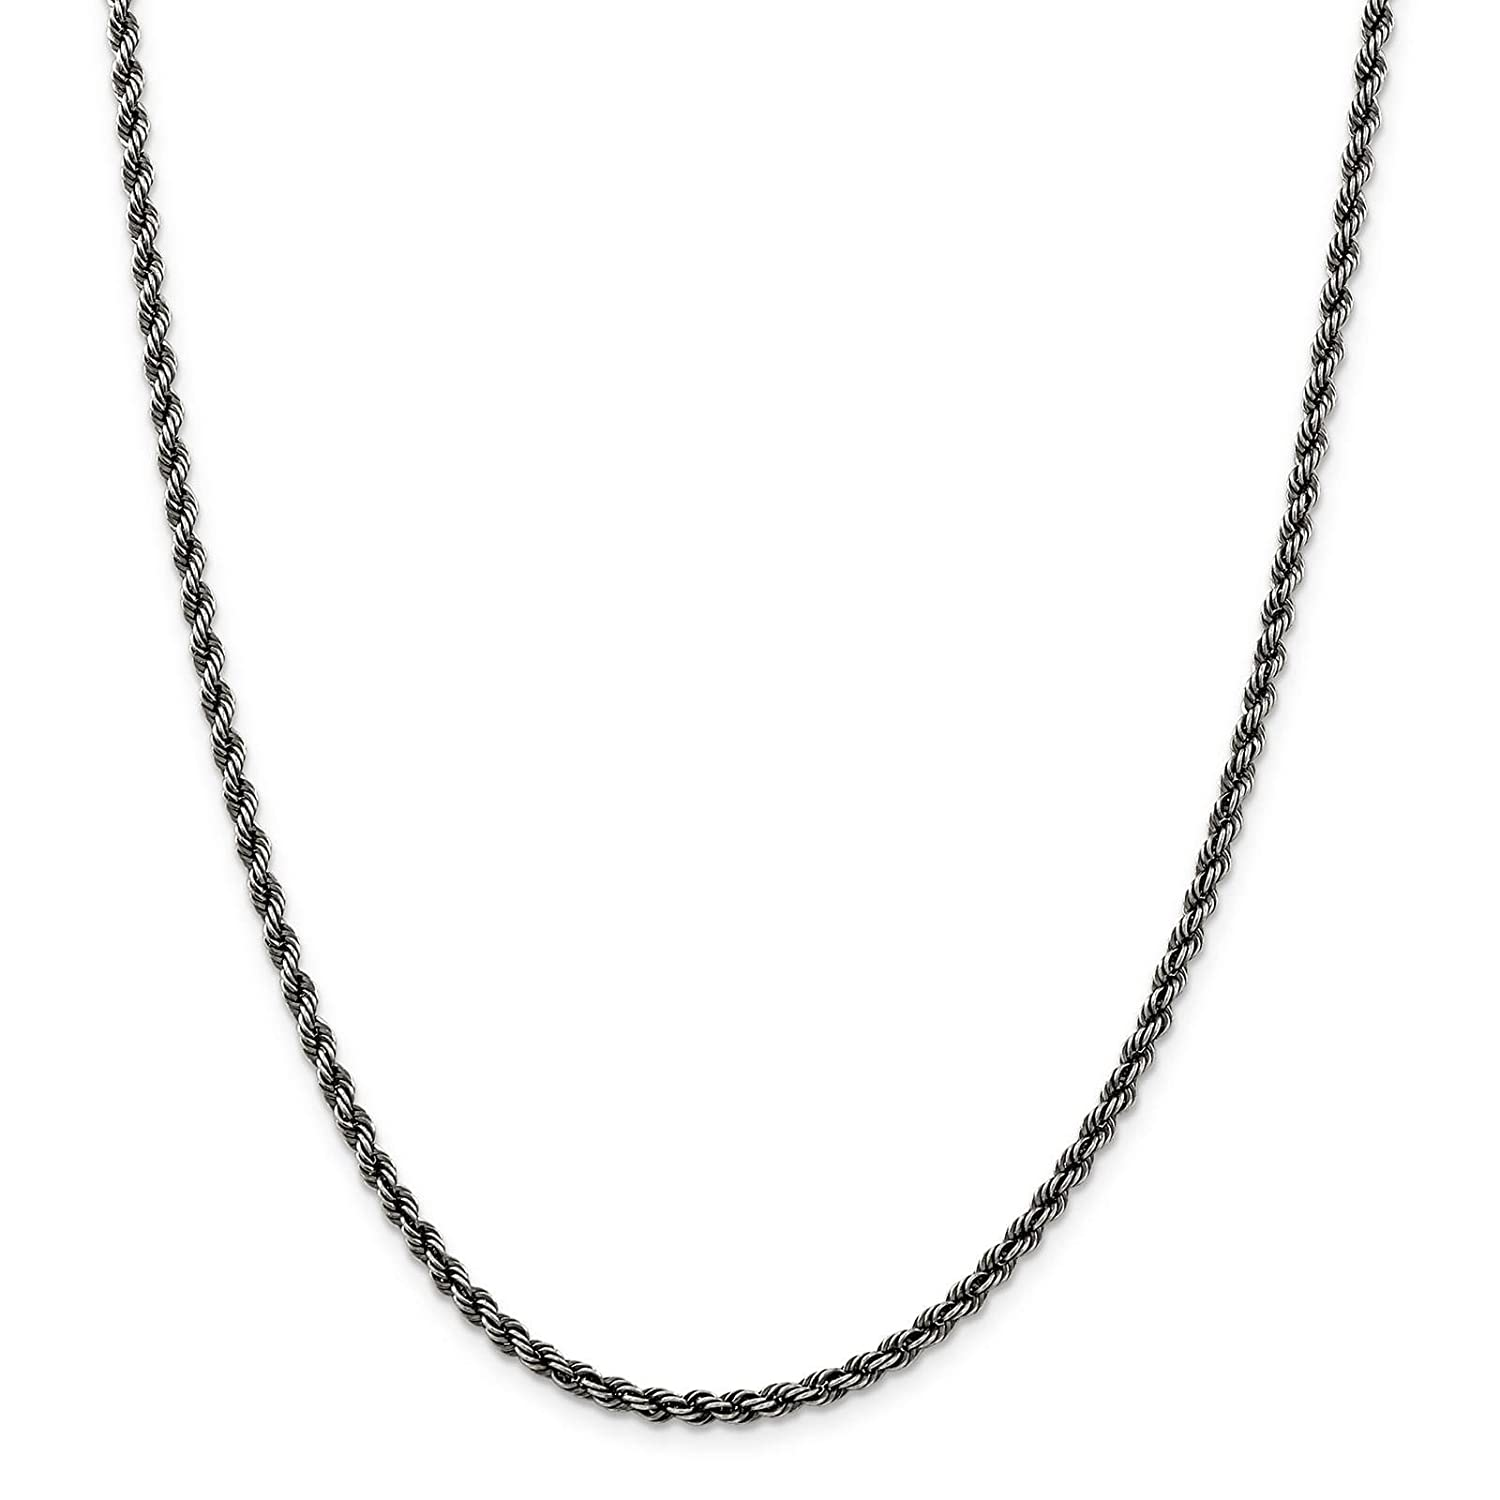 925 Sterling Silver Ruthenium-plated 3mm Rope Chain Necklace 7-24